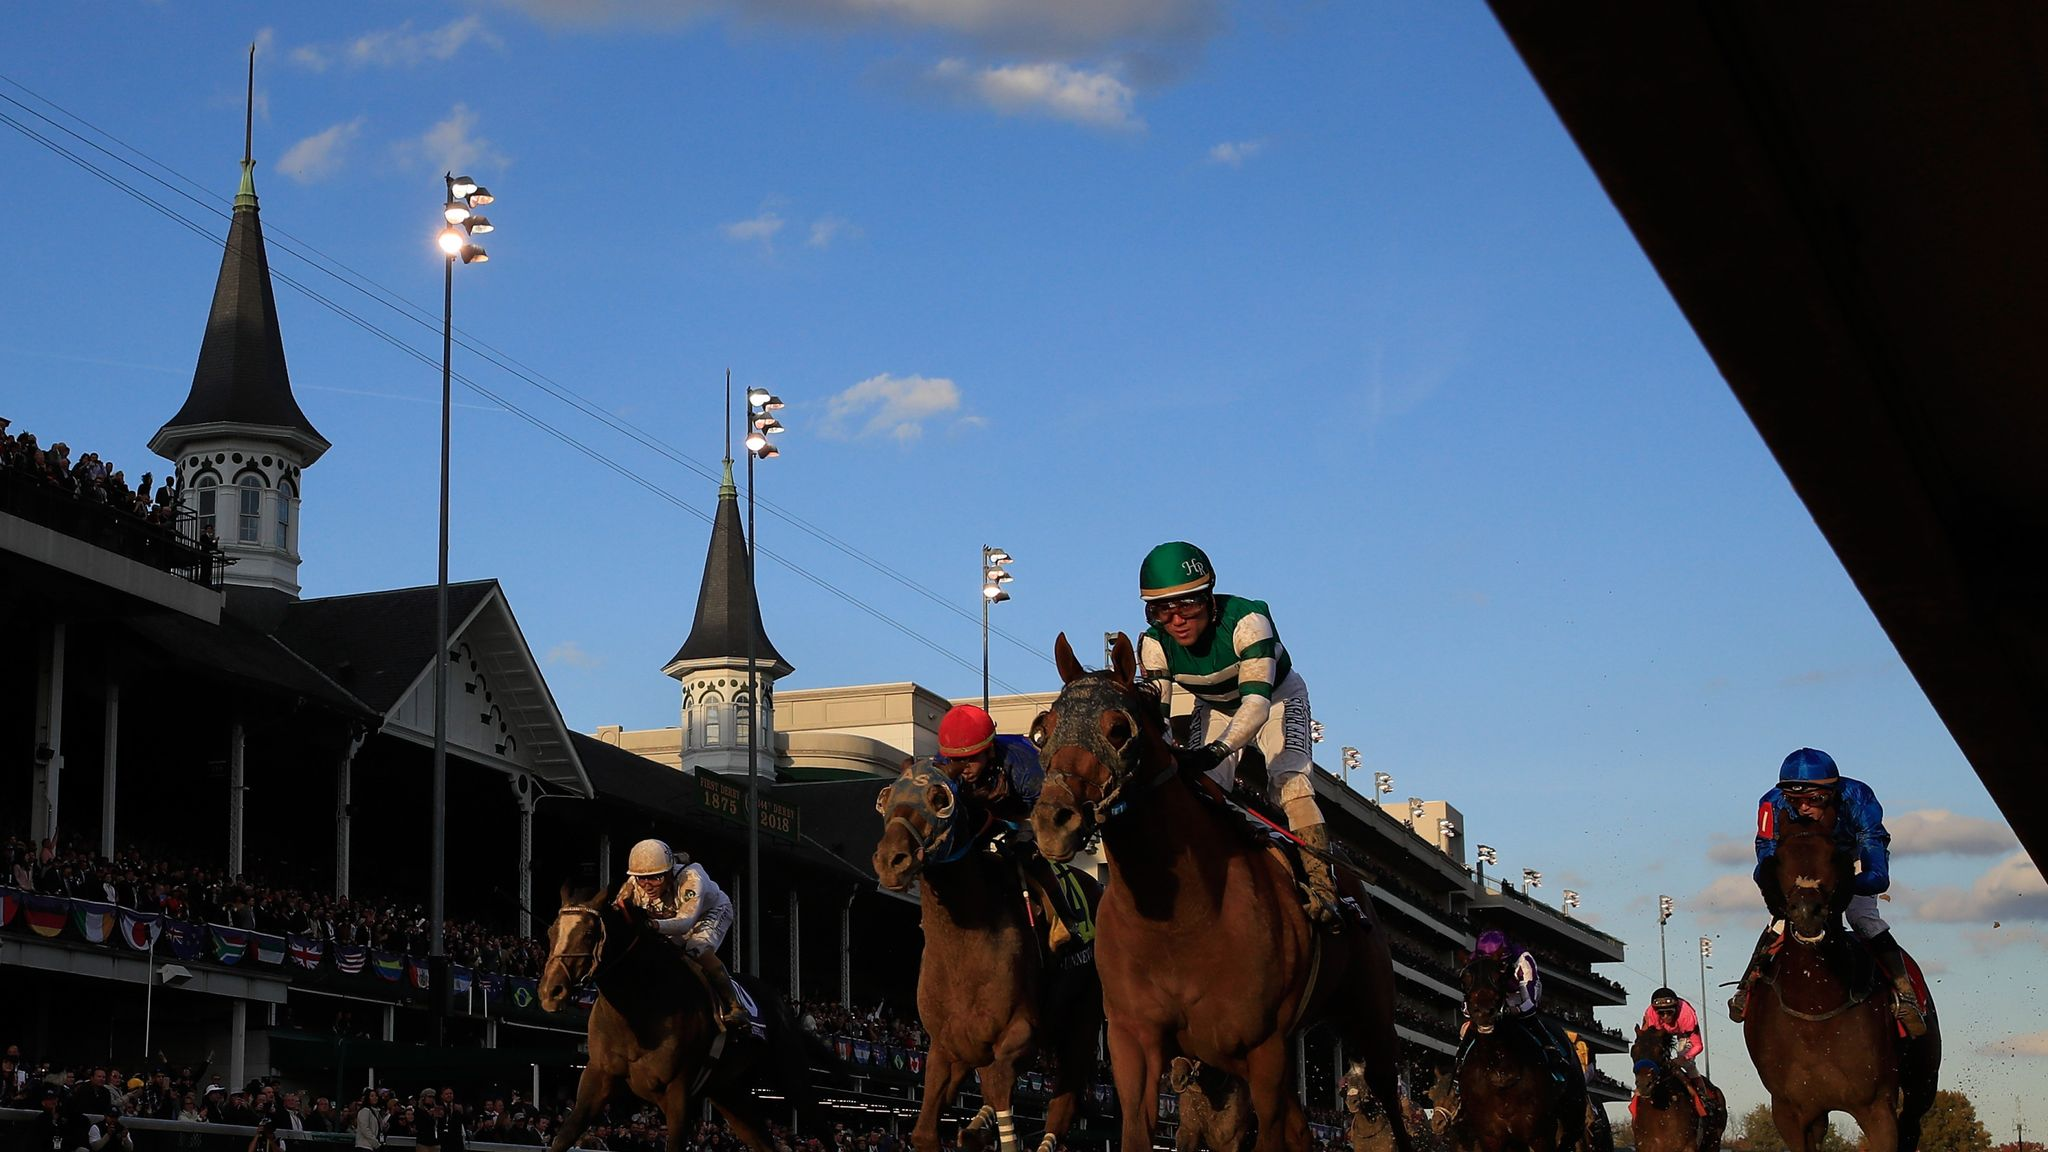 Drunk man arrested for riding horse at Breeders' Cup